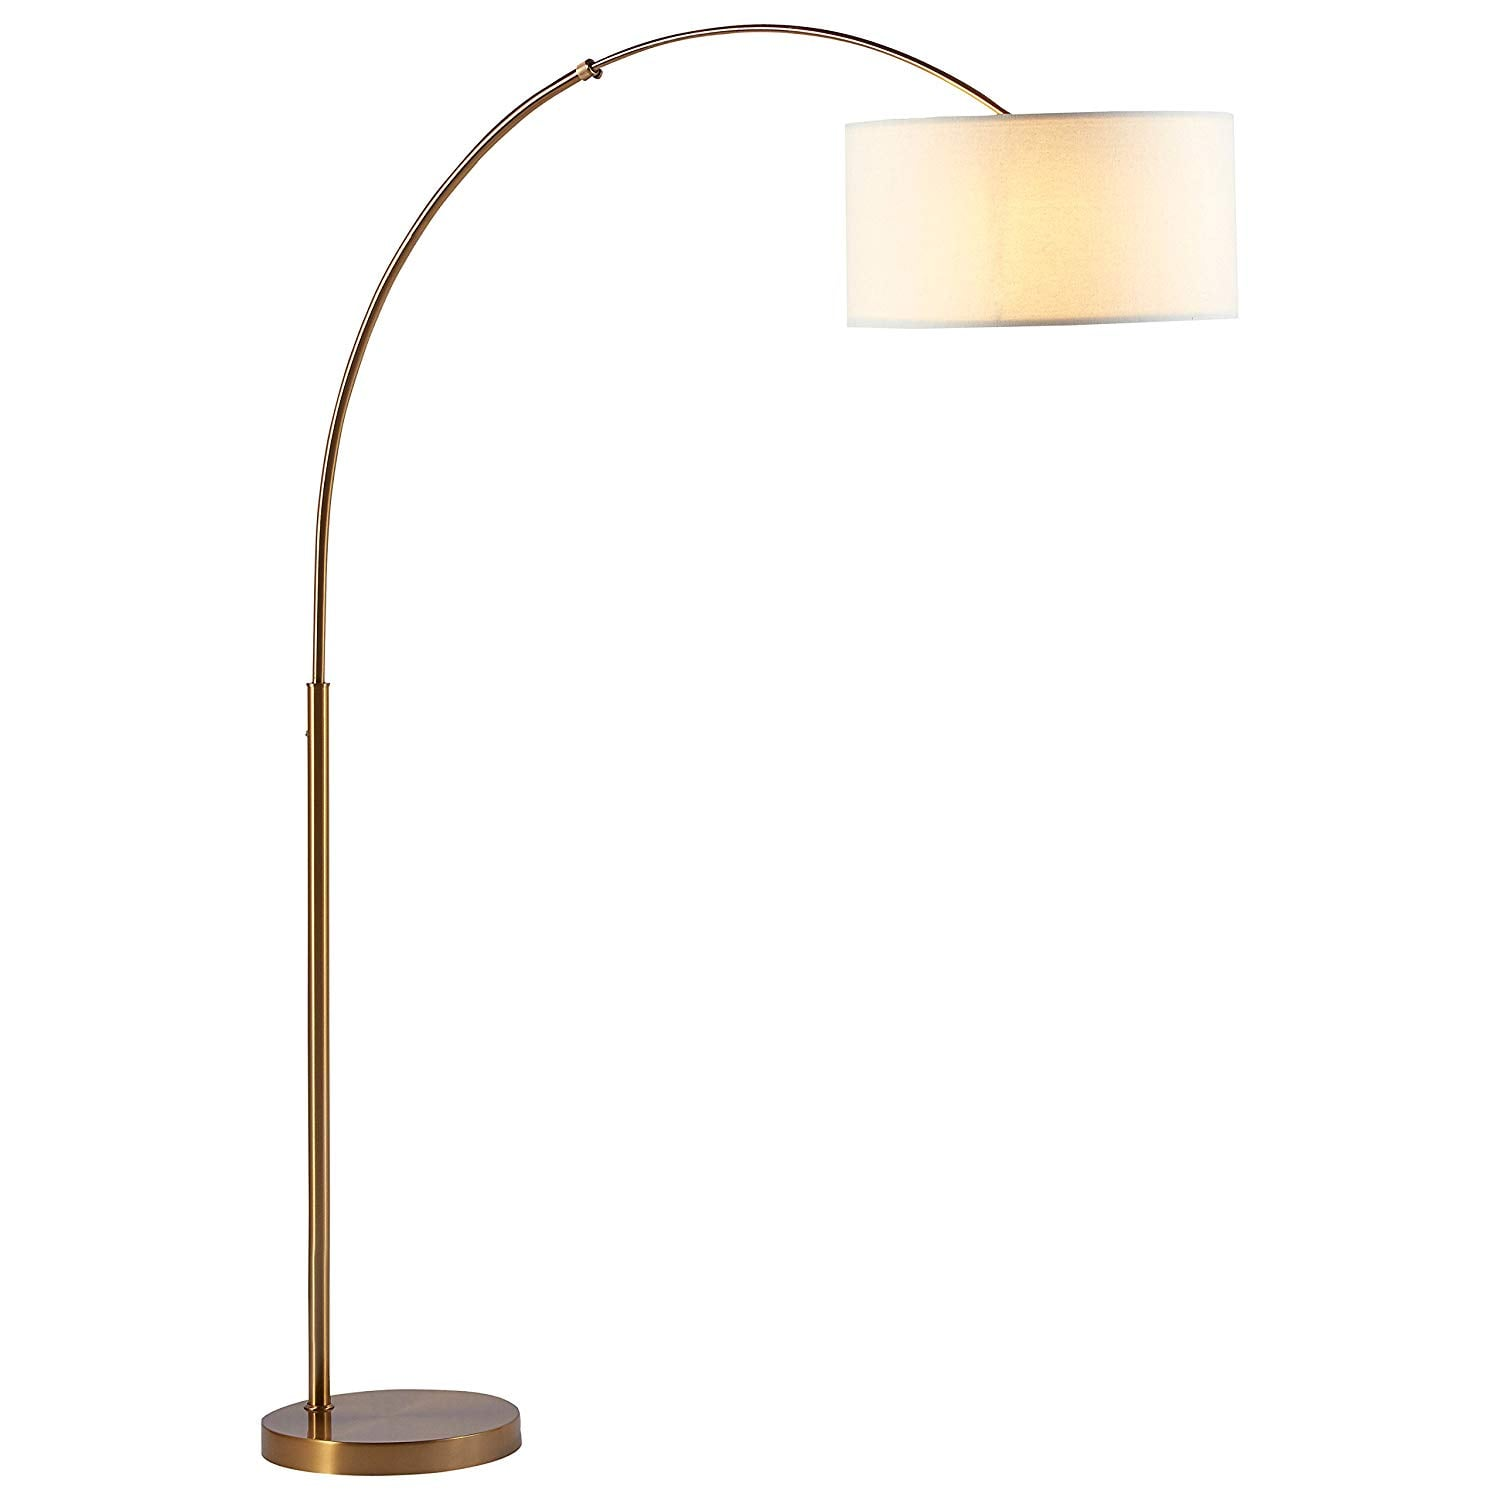 Rivet Brass Arc Mid Century Modern Living Room Standing Floor Lamp 105 Home Decor Items From Amazon Selling Faster Than We Can Type Starting At Just 20 Popsugar Home Photo 31